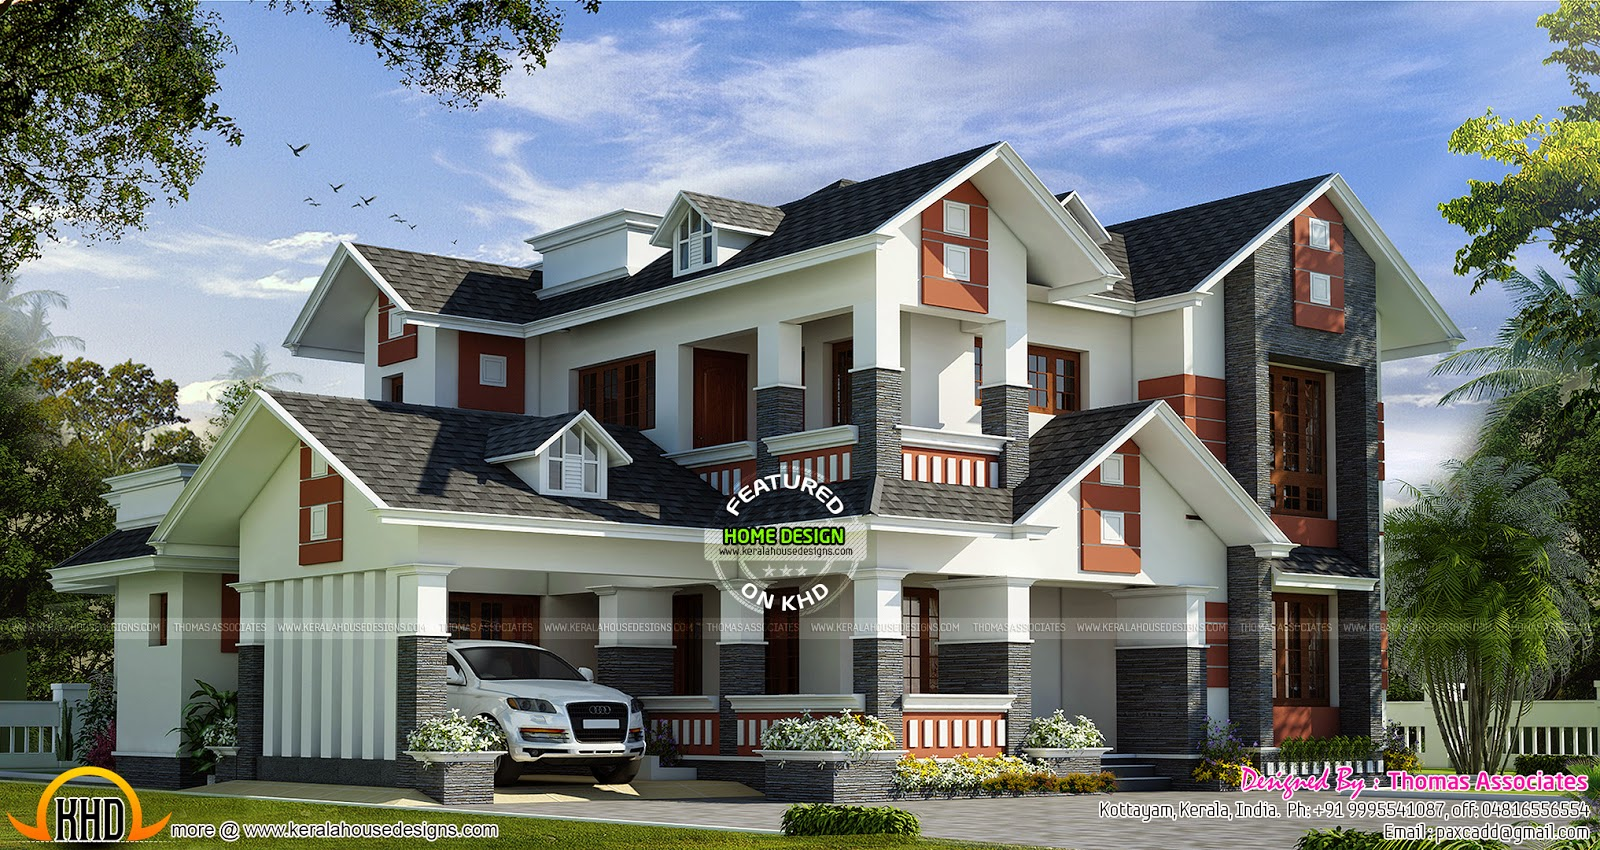 Modern mix house with dormer windows kerala home design for Dormer house plans designs